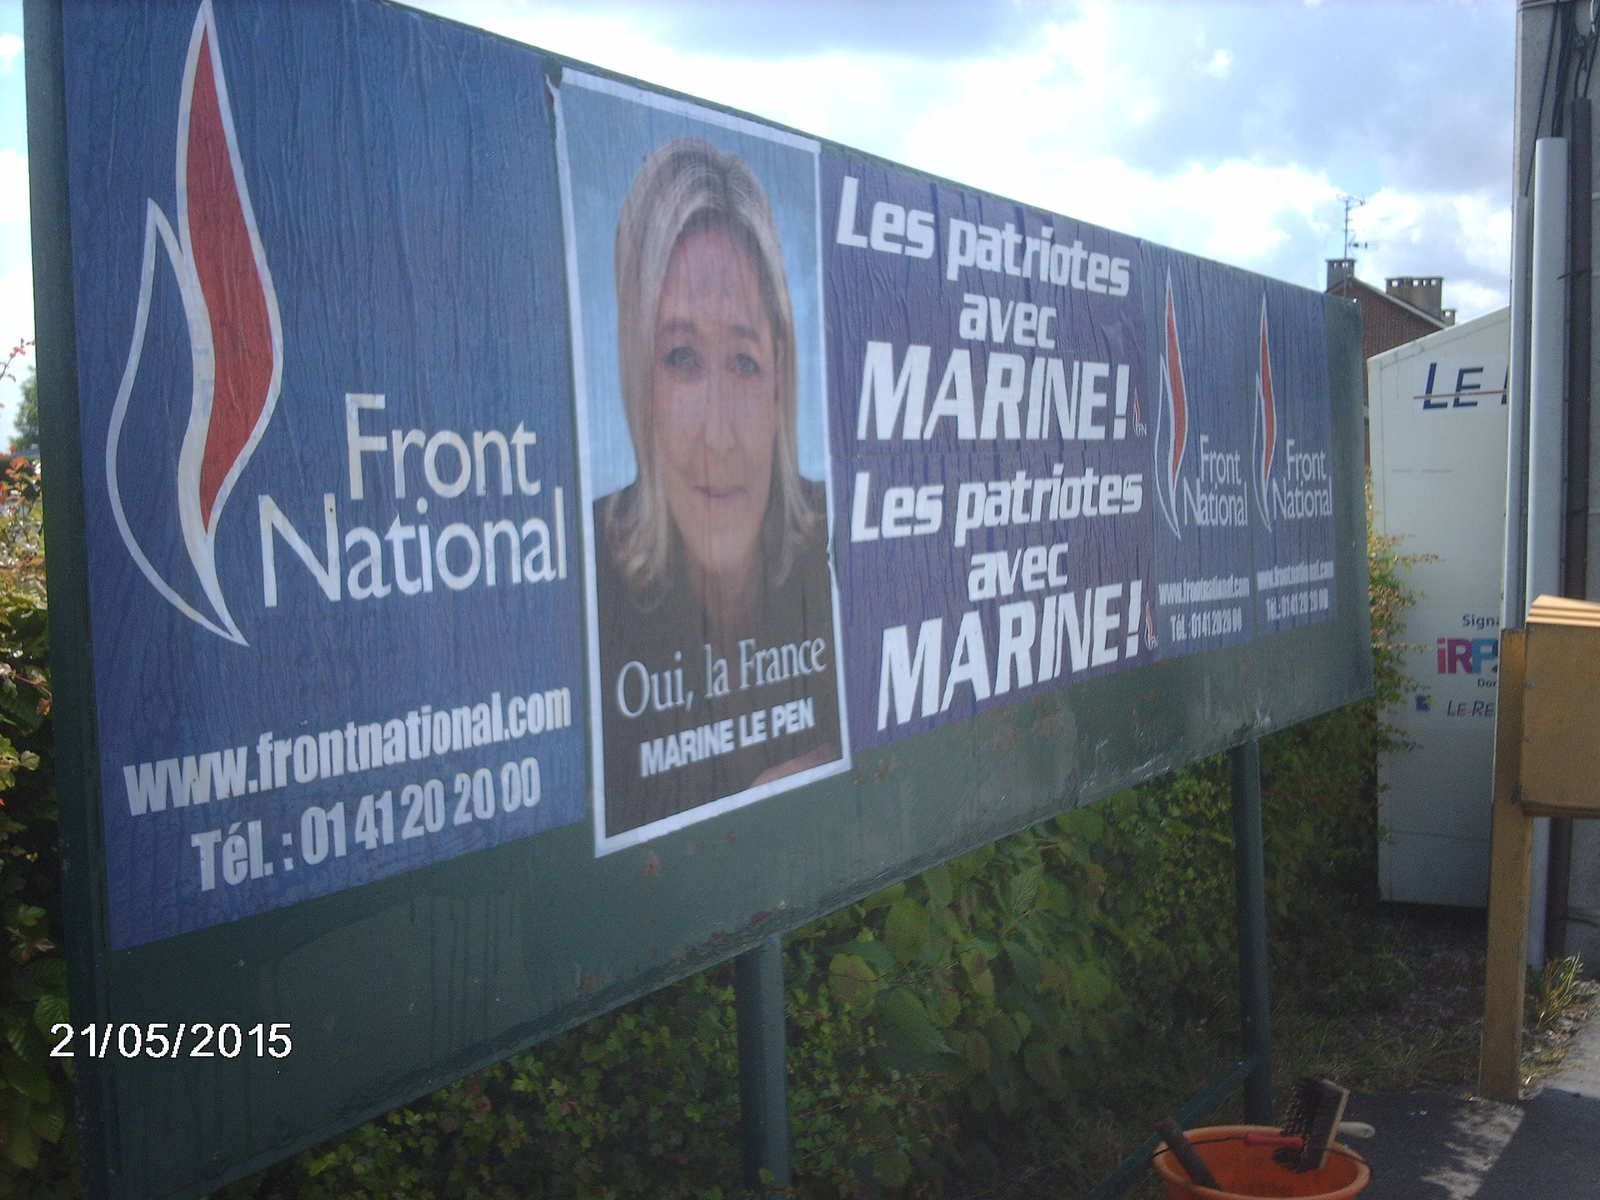 Collage massif dans la 12e circonscription du Nord